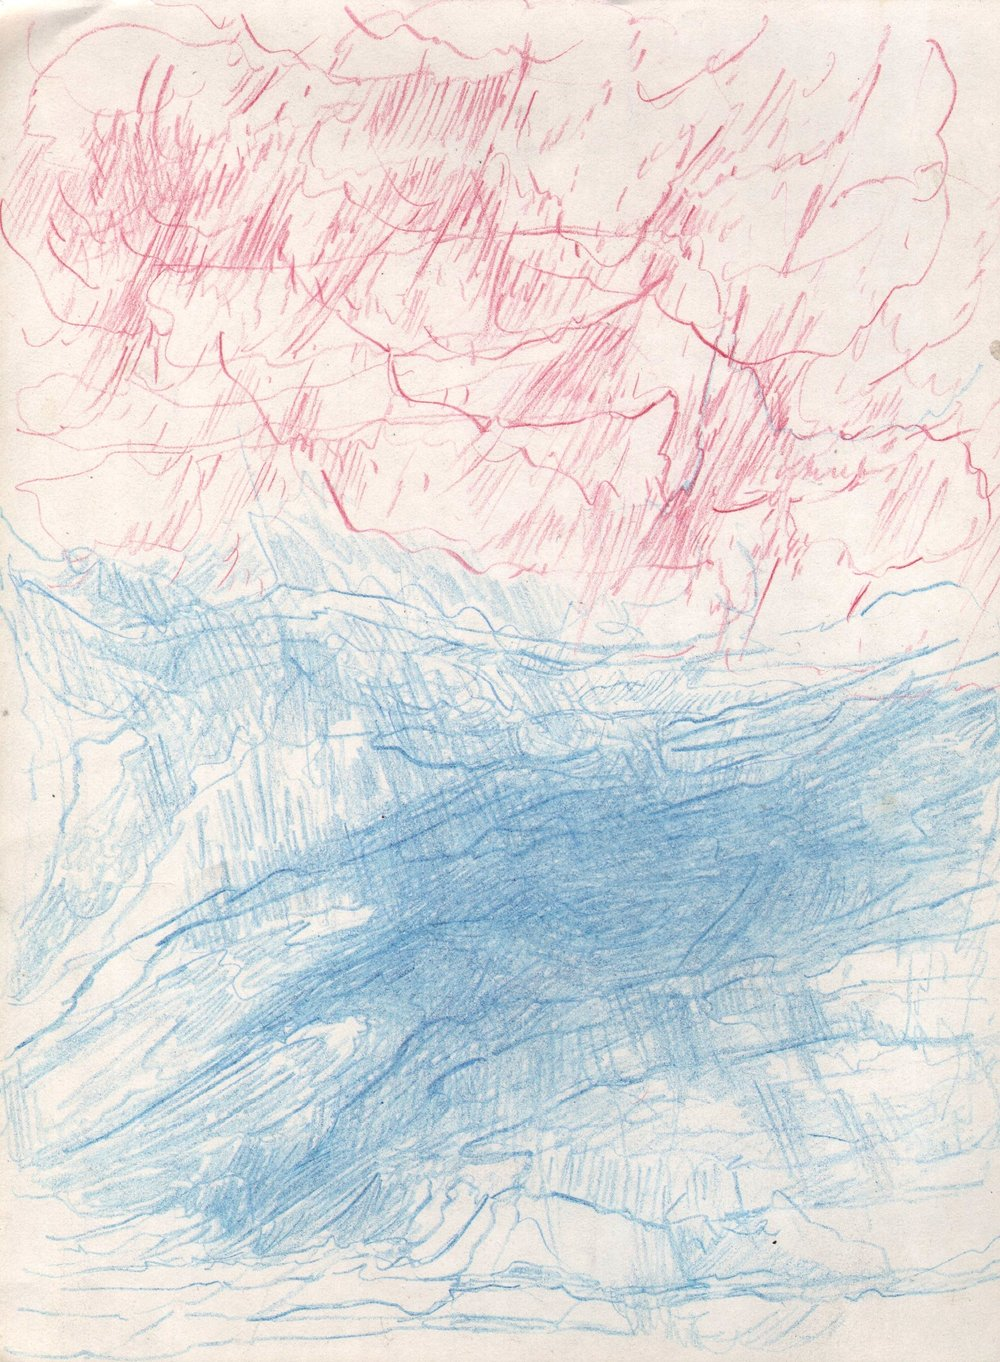 Red Rain, Blue Canyon, 2015, 8 x 6 inches, pencil on paper